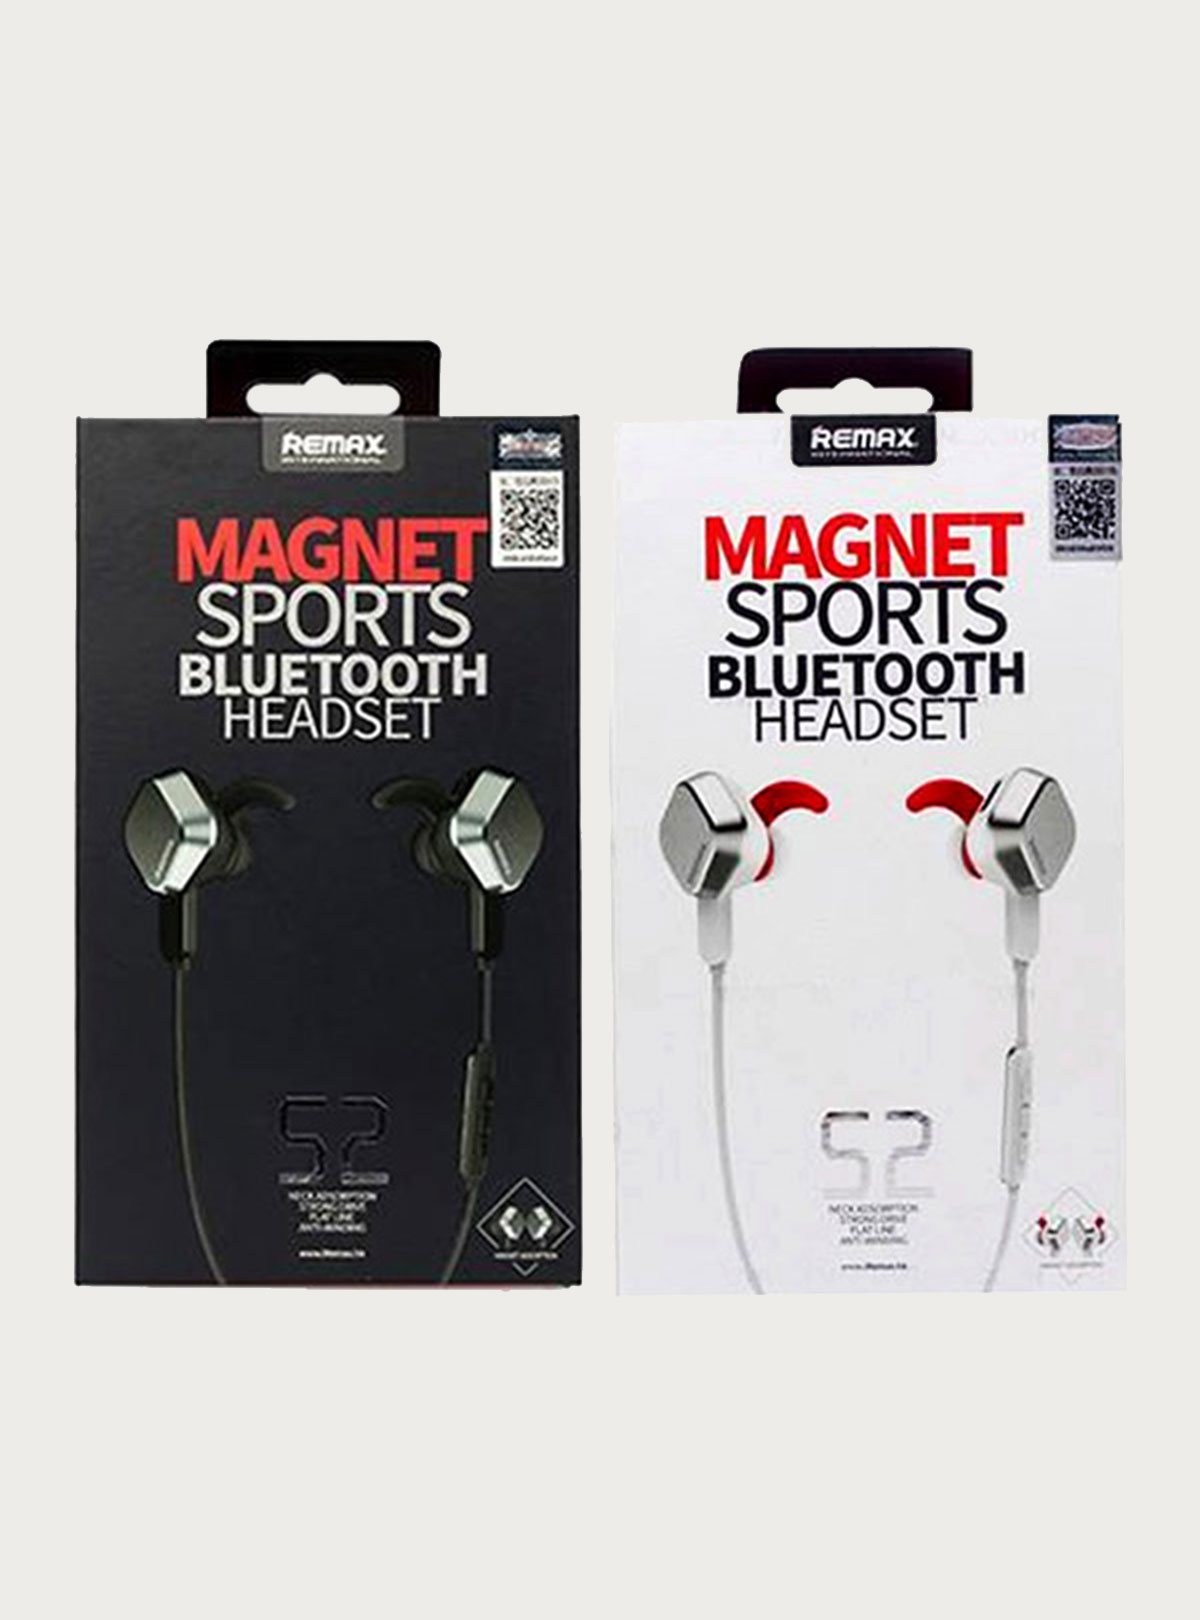 Remax S2 Magnet Sports Bluetooth Headset Remote Control with Mic